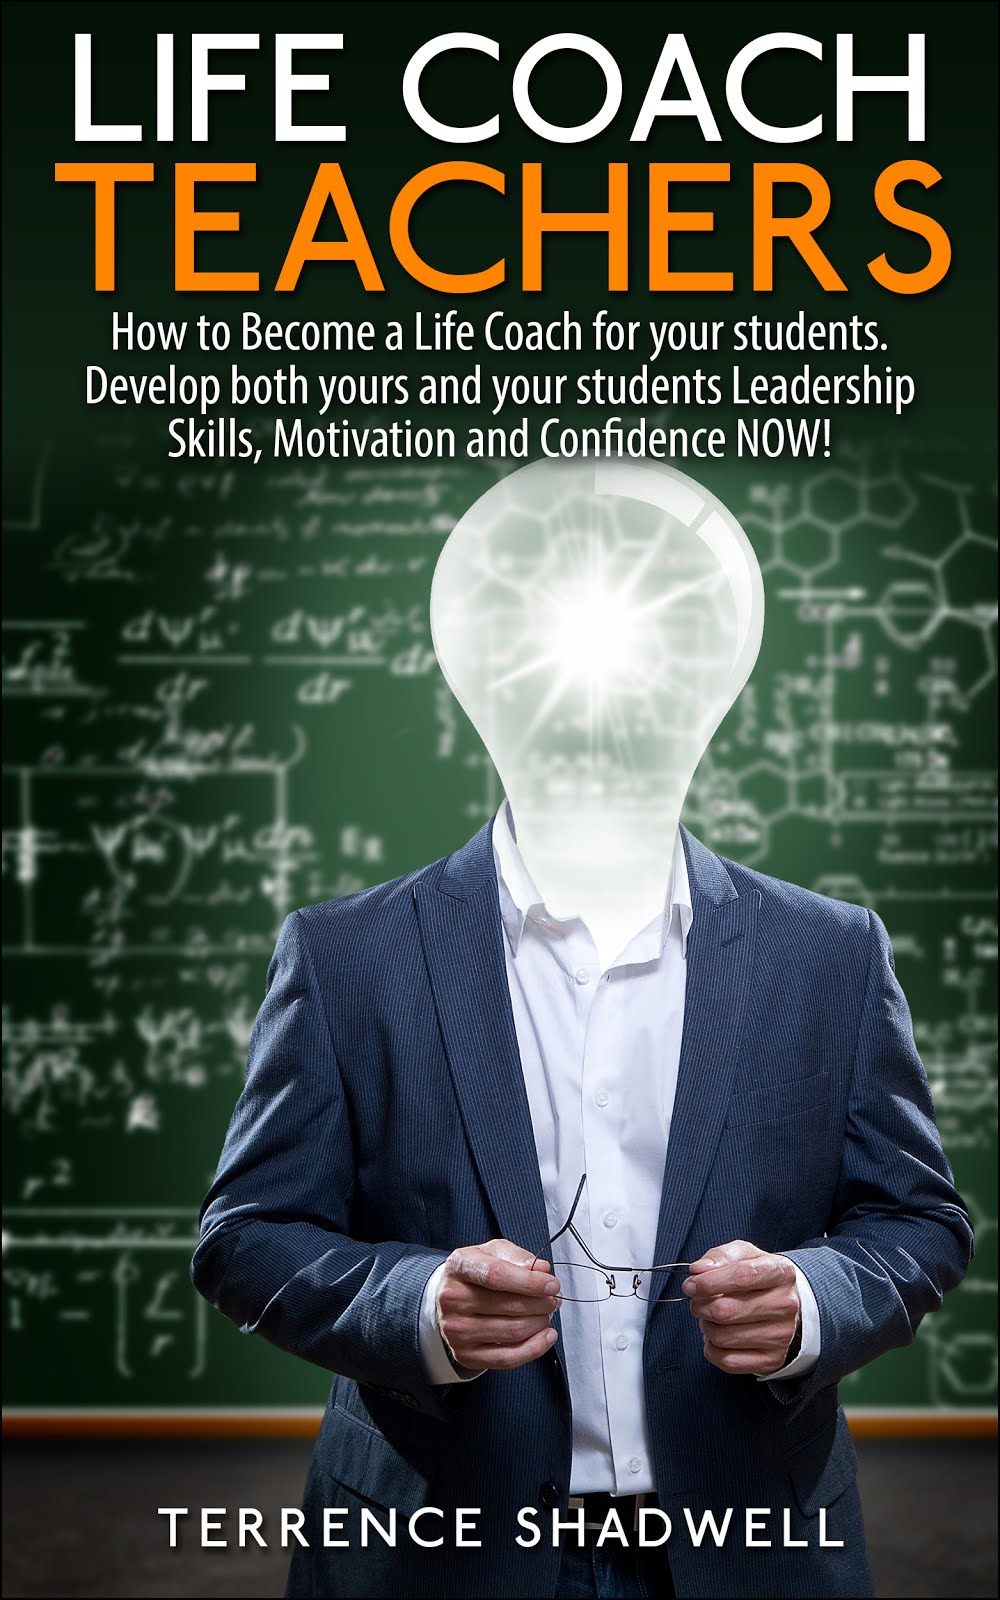 Life Coach Teachers